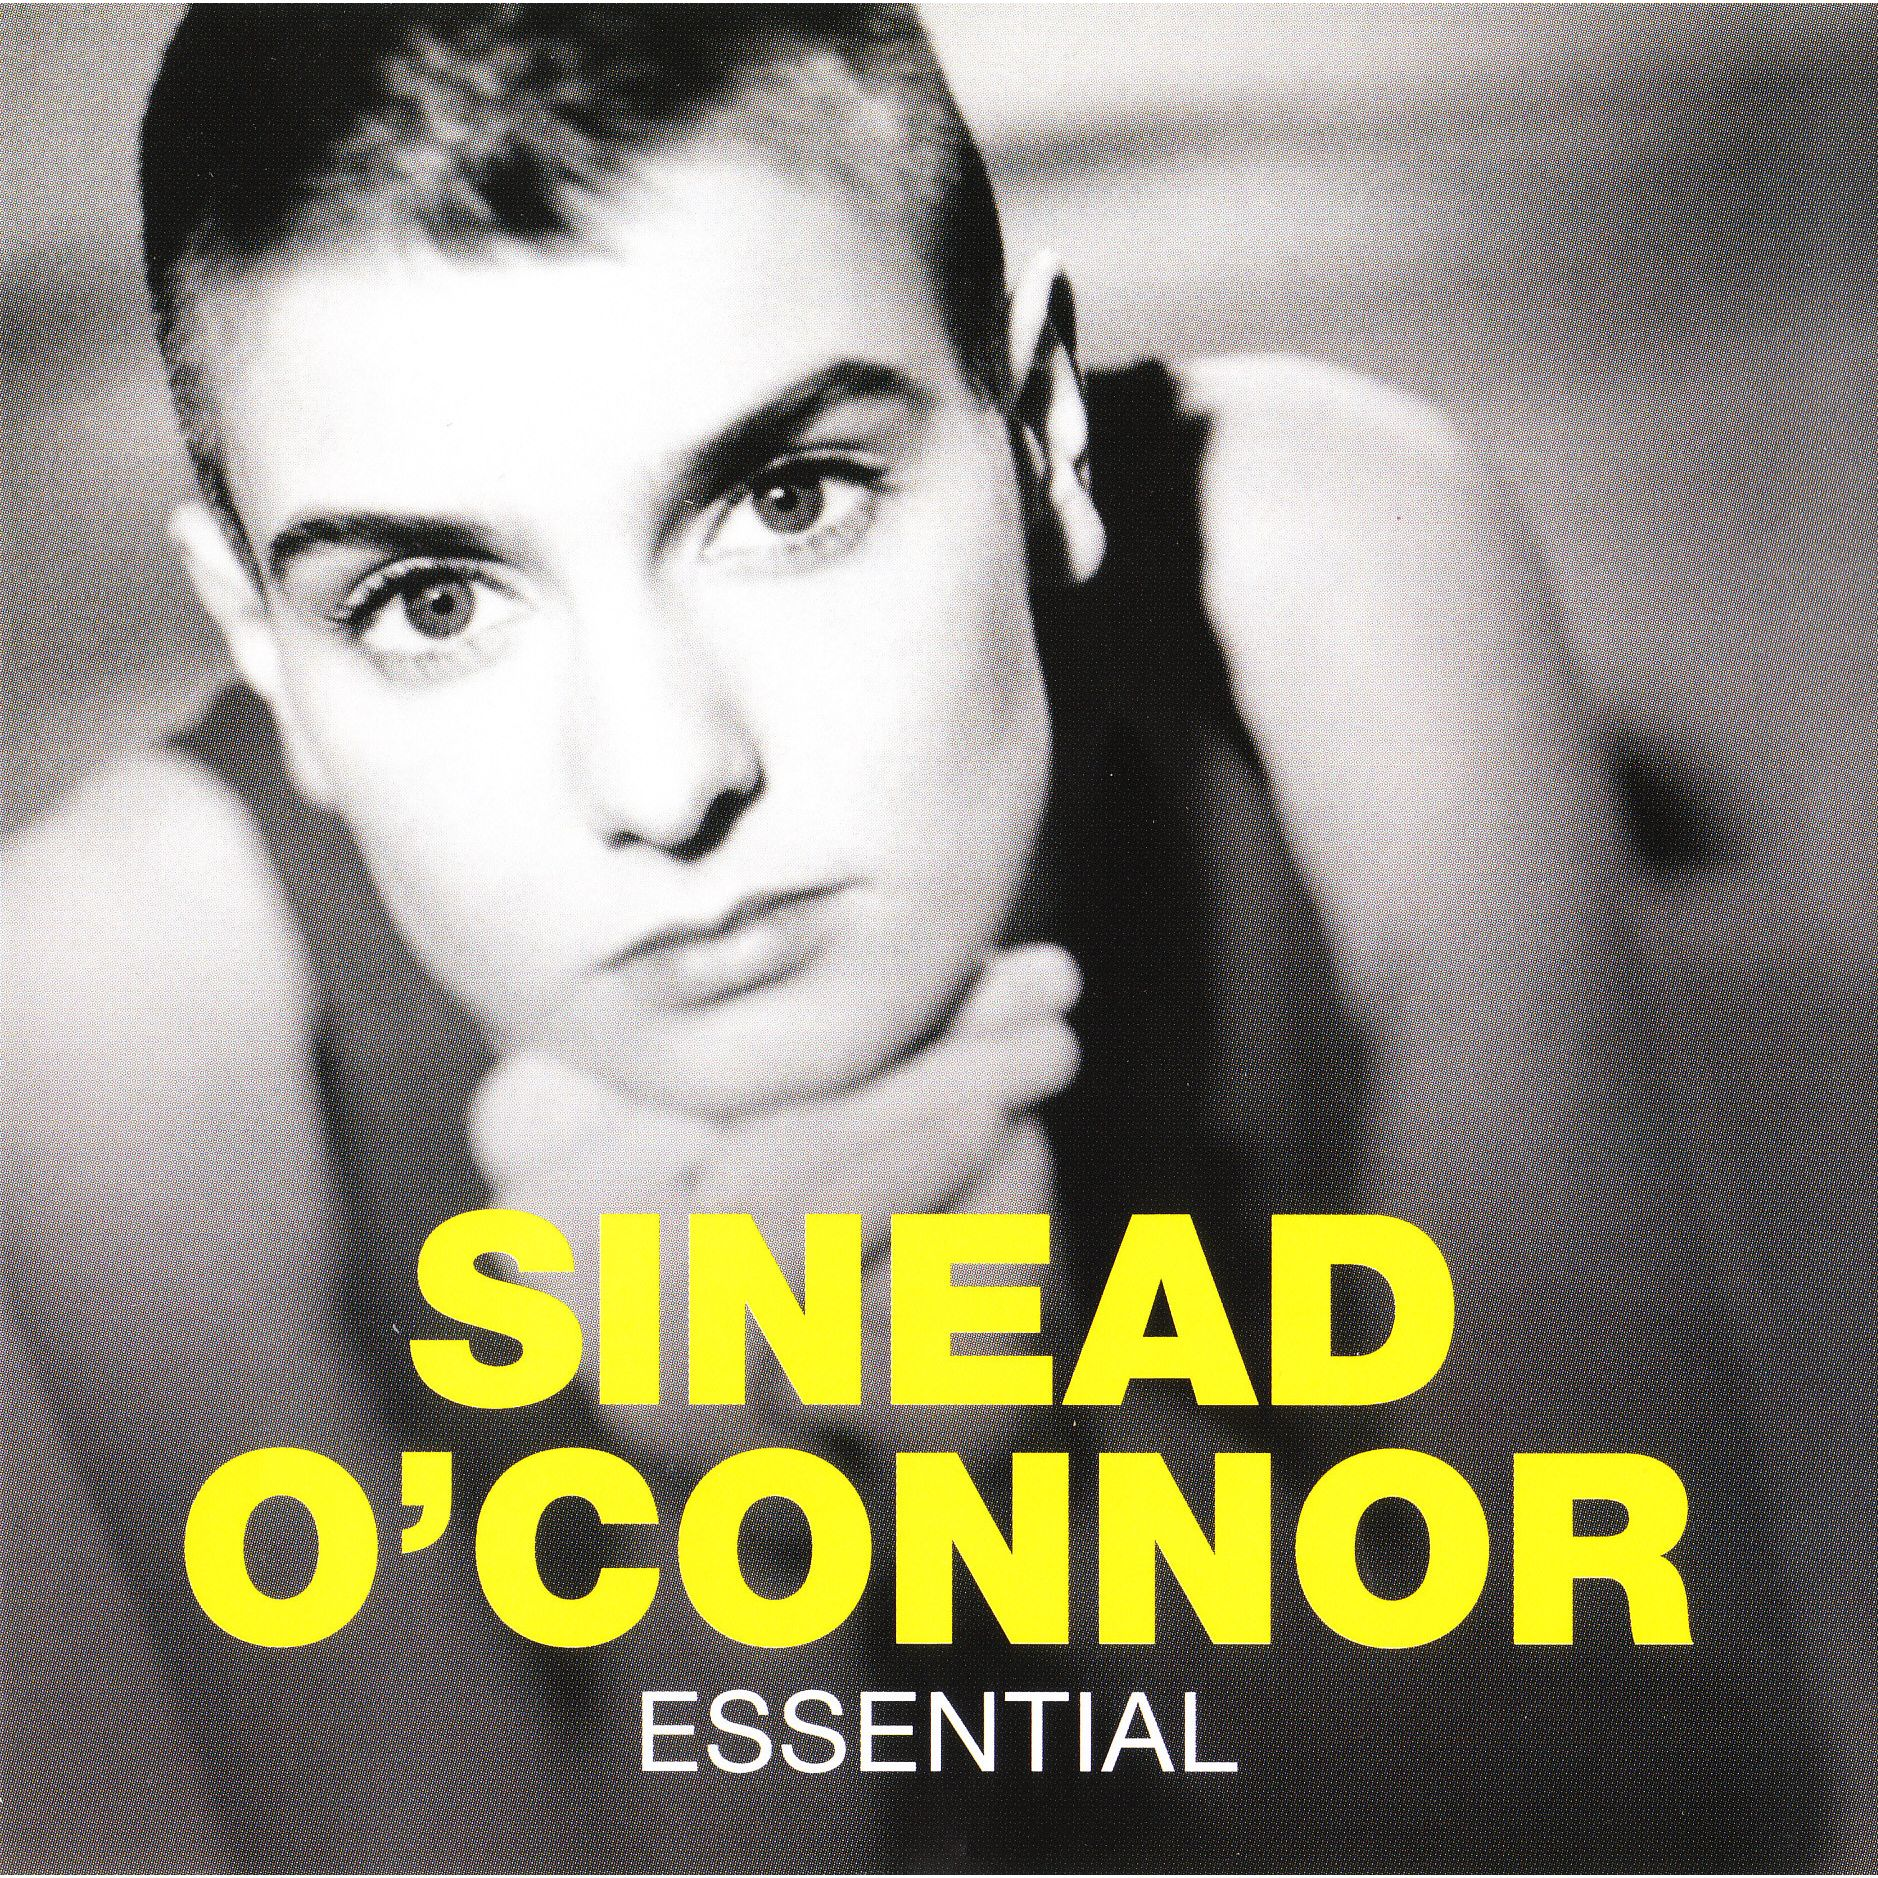 Sinéad O'Connor Claims To Be Suicidal In Troubling Video–Fans Concerned For Her Safety